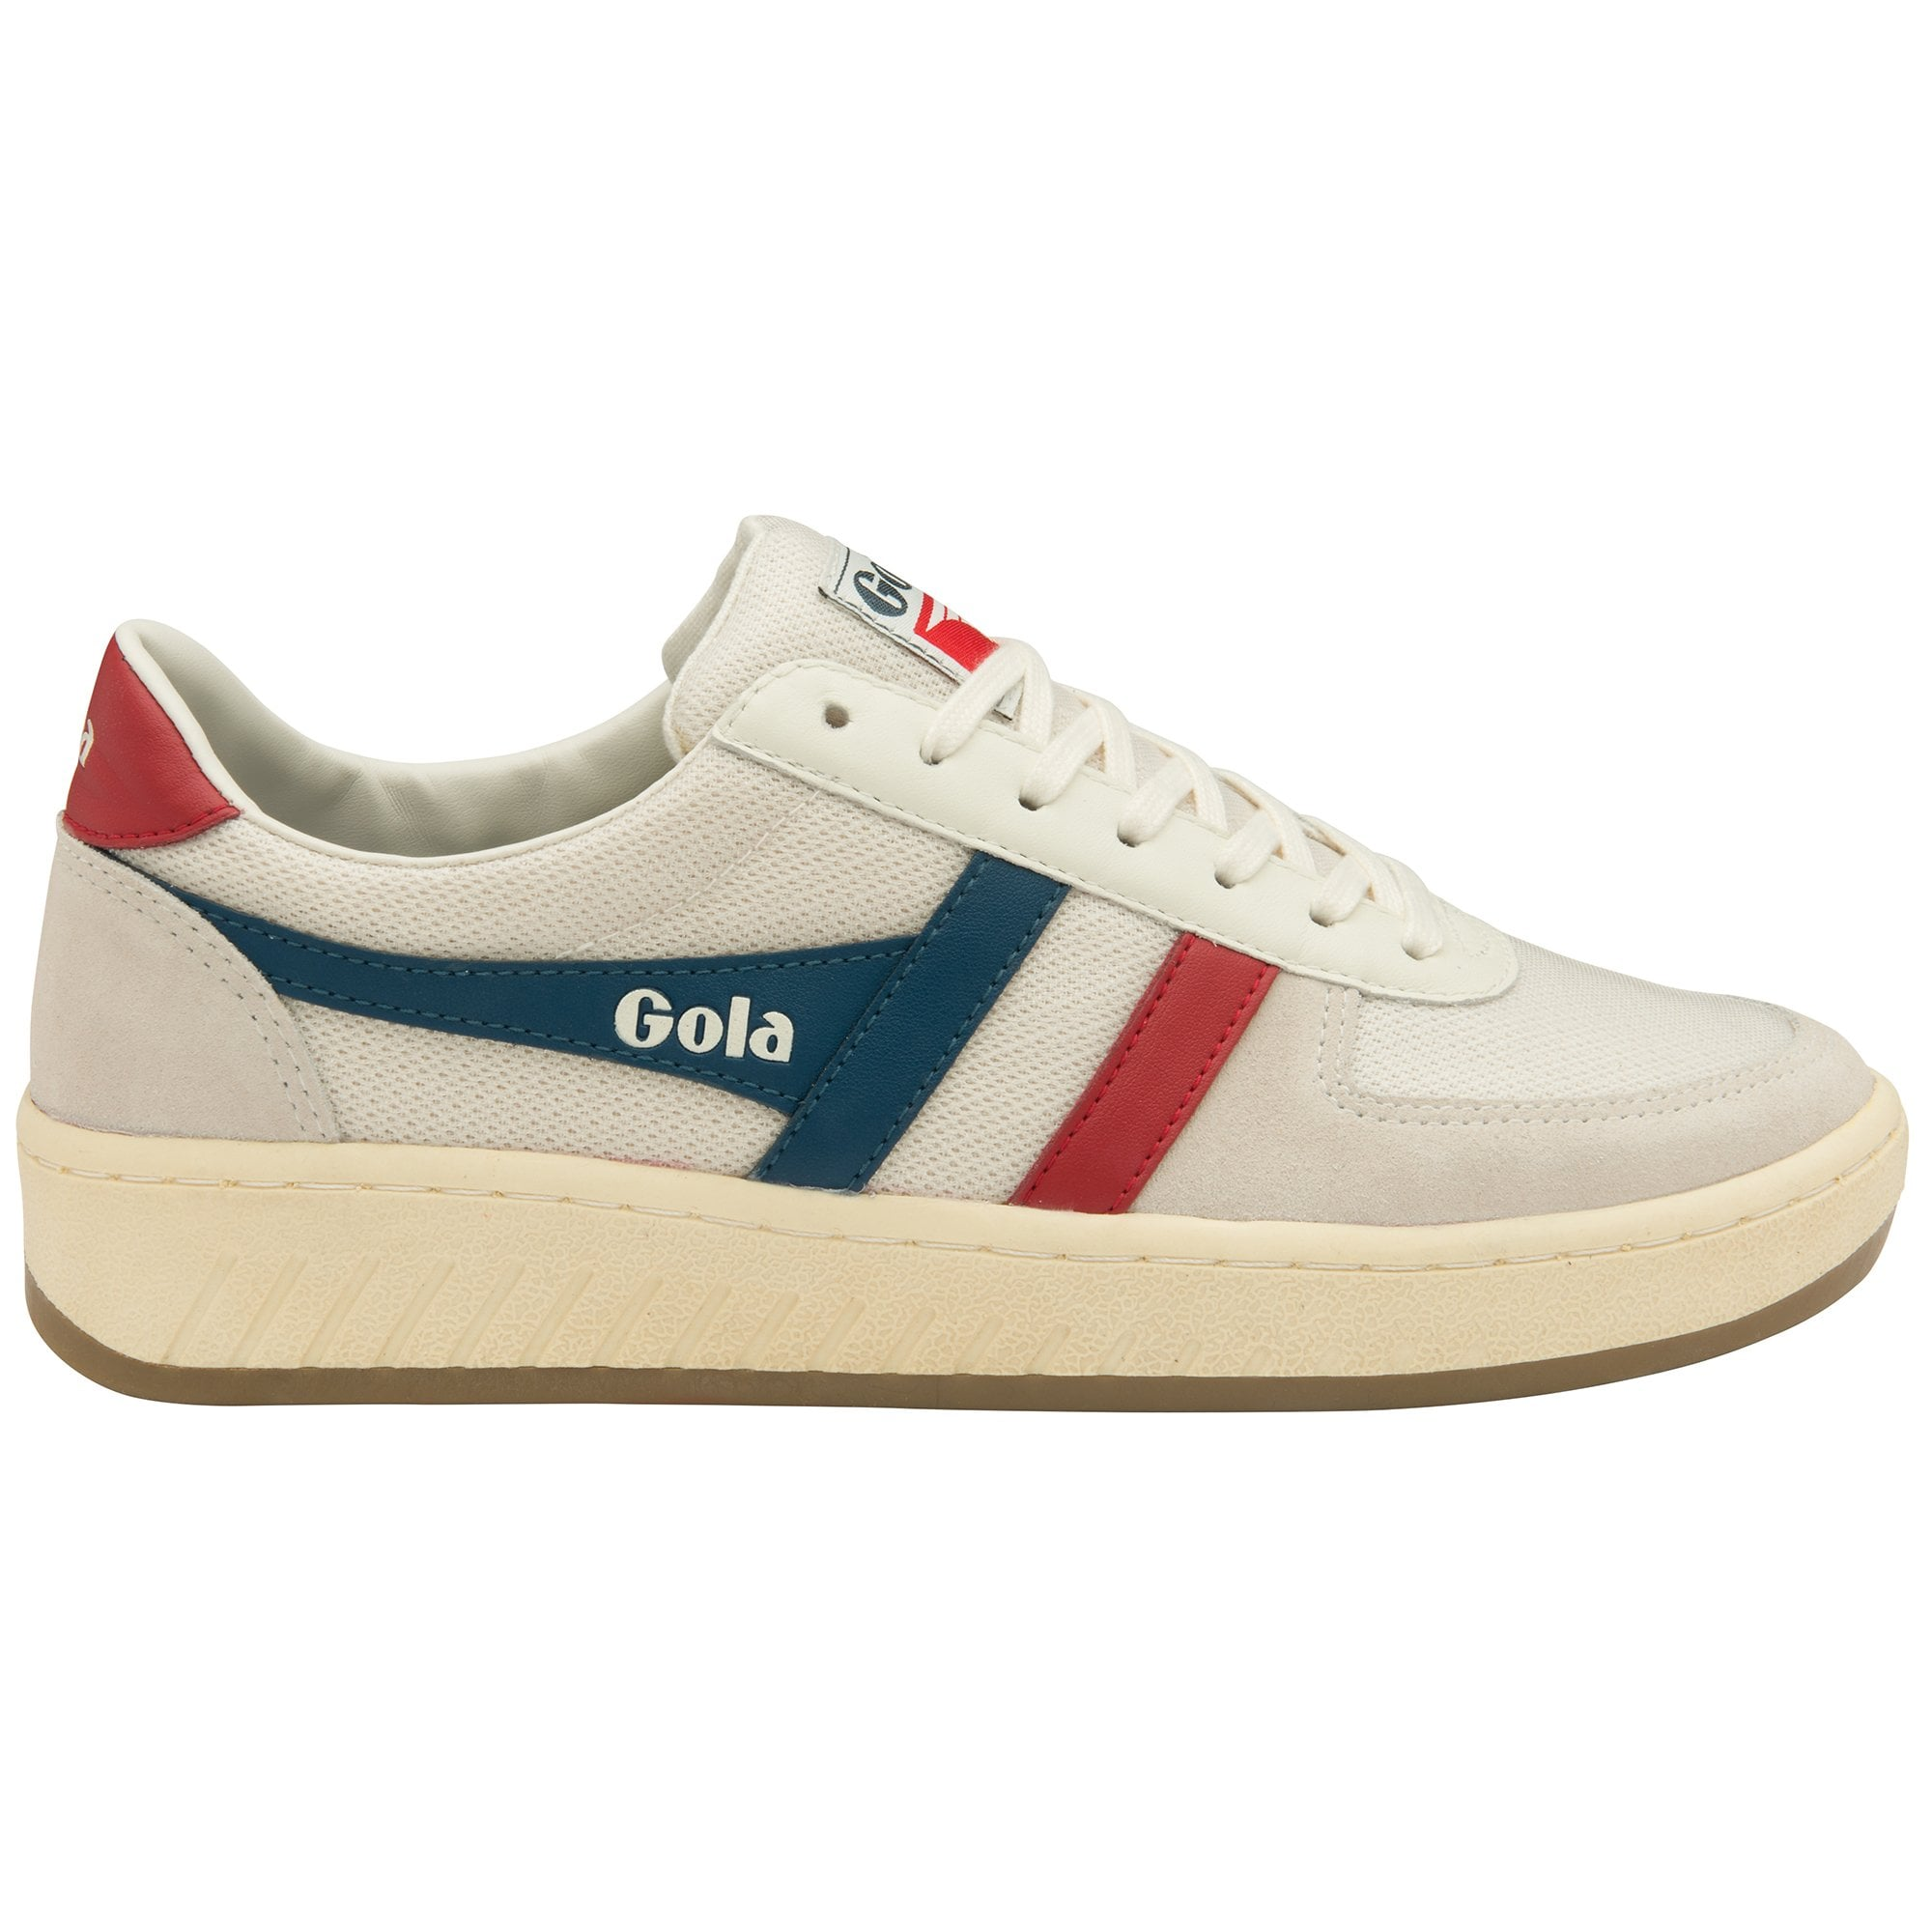 Mens Gola Classic Vintage Lace Up Sneakers New Low Top Football Active Trainers